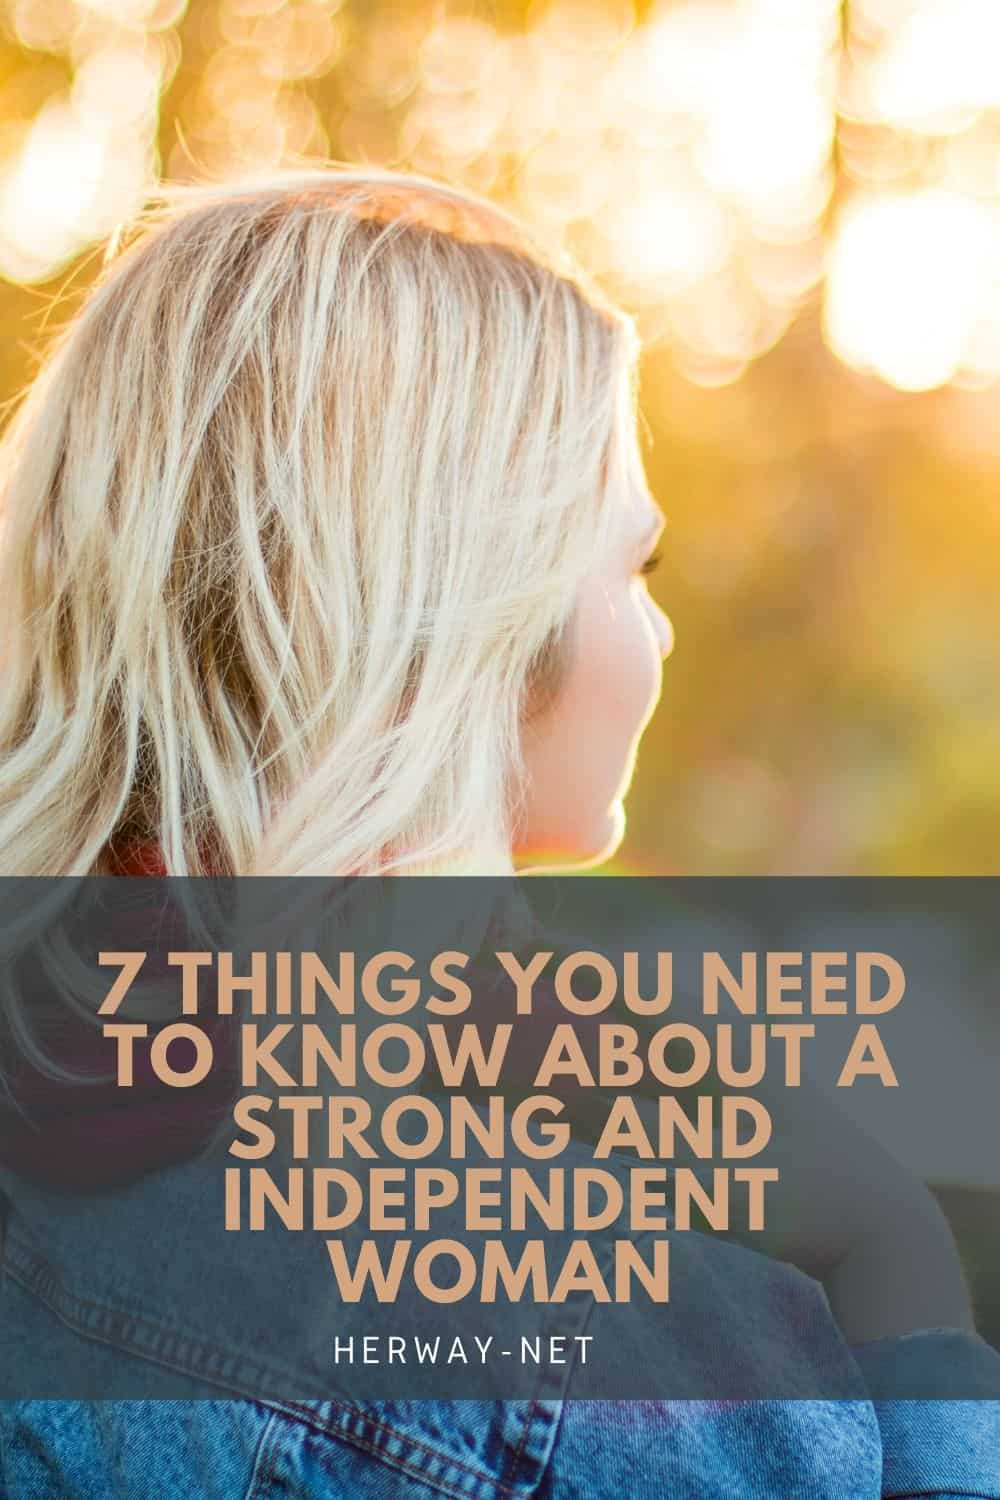 7 Things You Need To Know About A Strong And Independent Woman